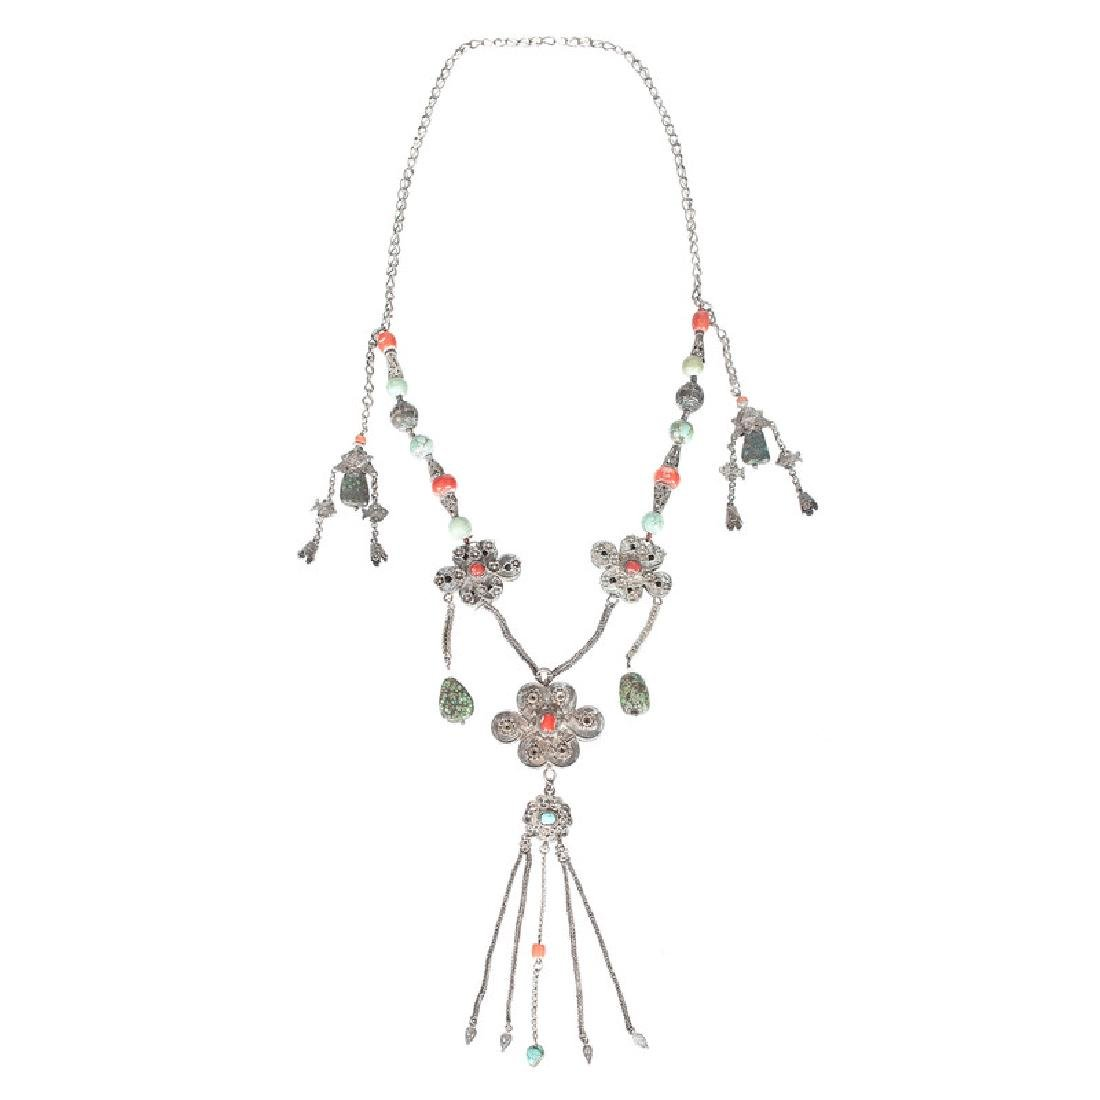 Tibetan Silver and Turquoise Necklace, Plus - 2